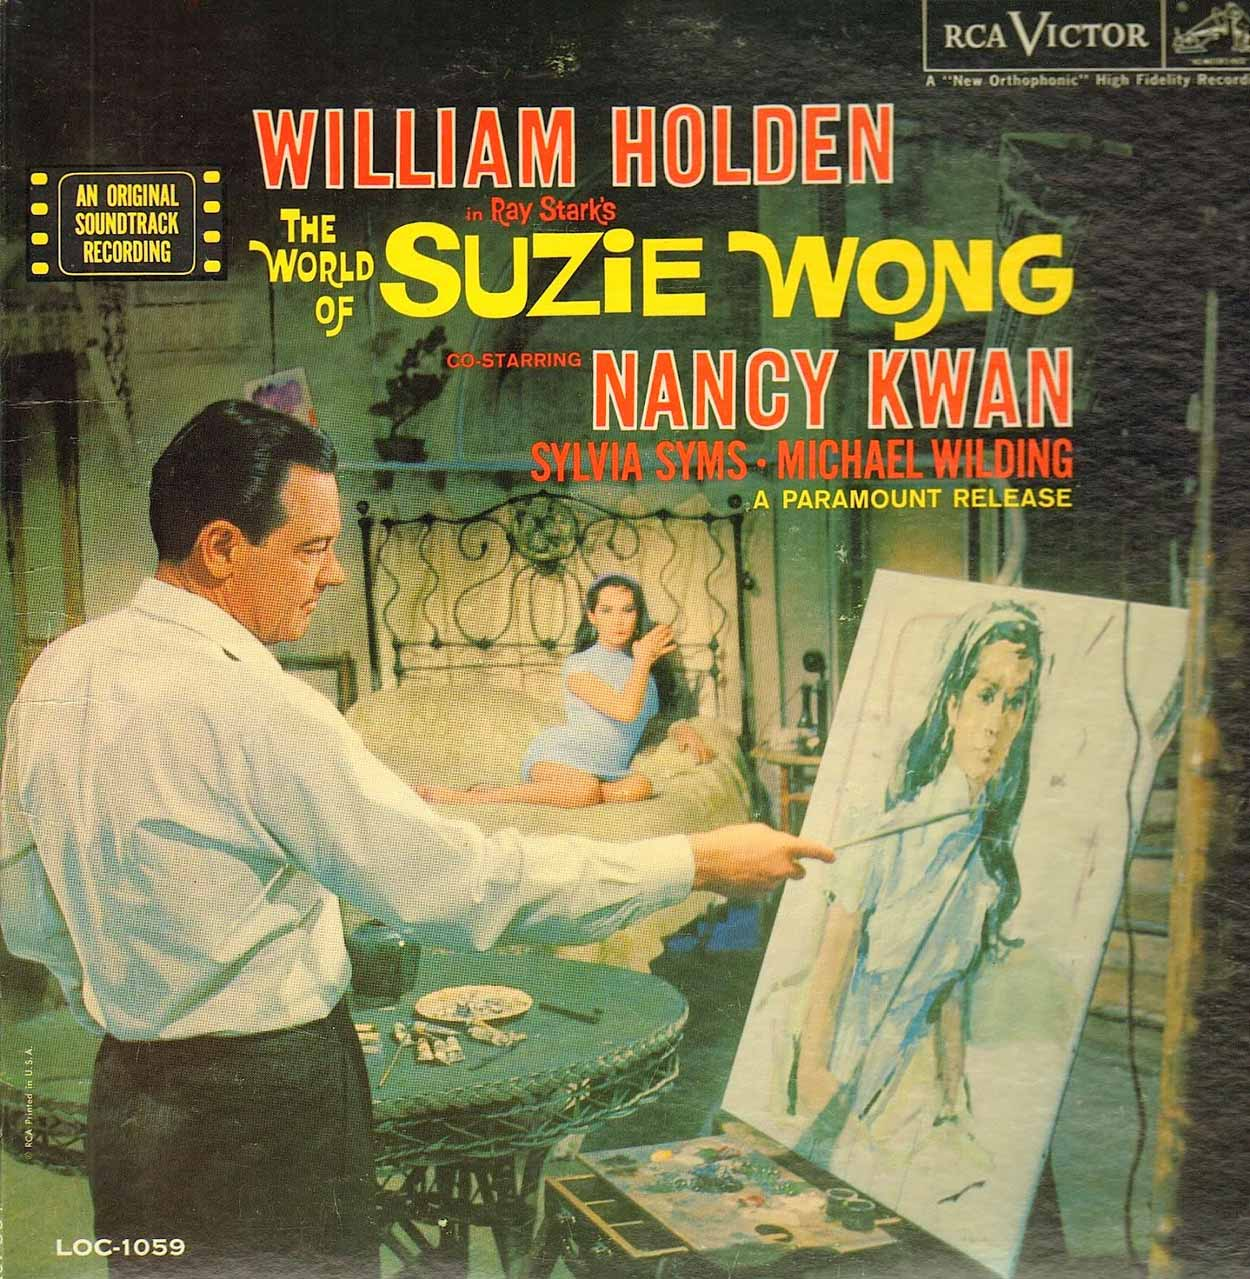 The World of Suzie Wong soundtrack